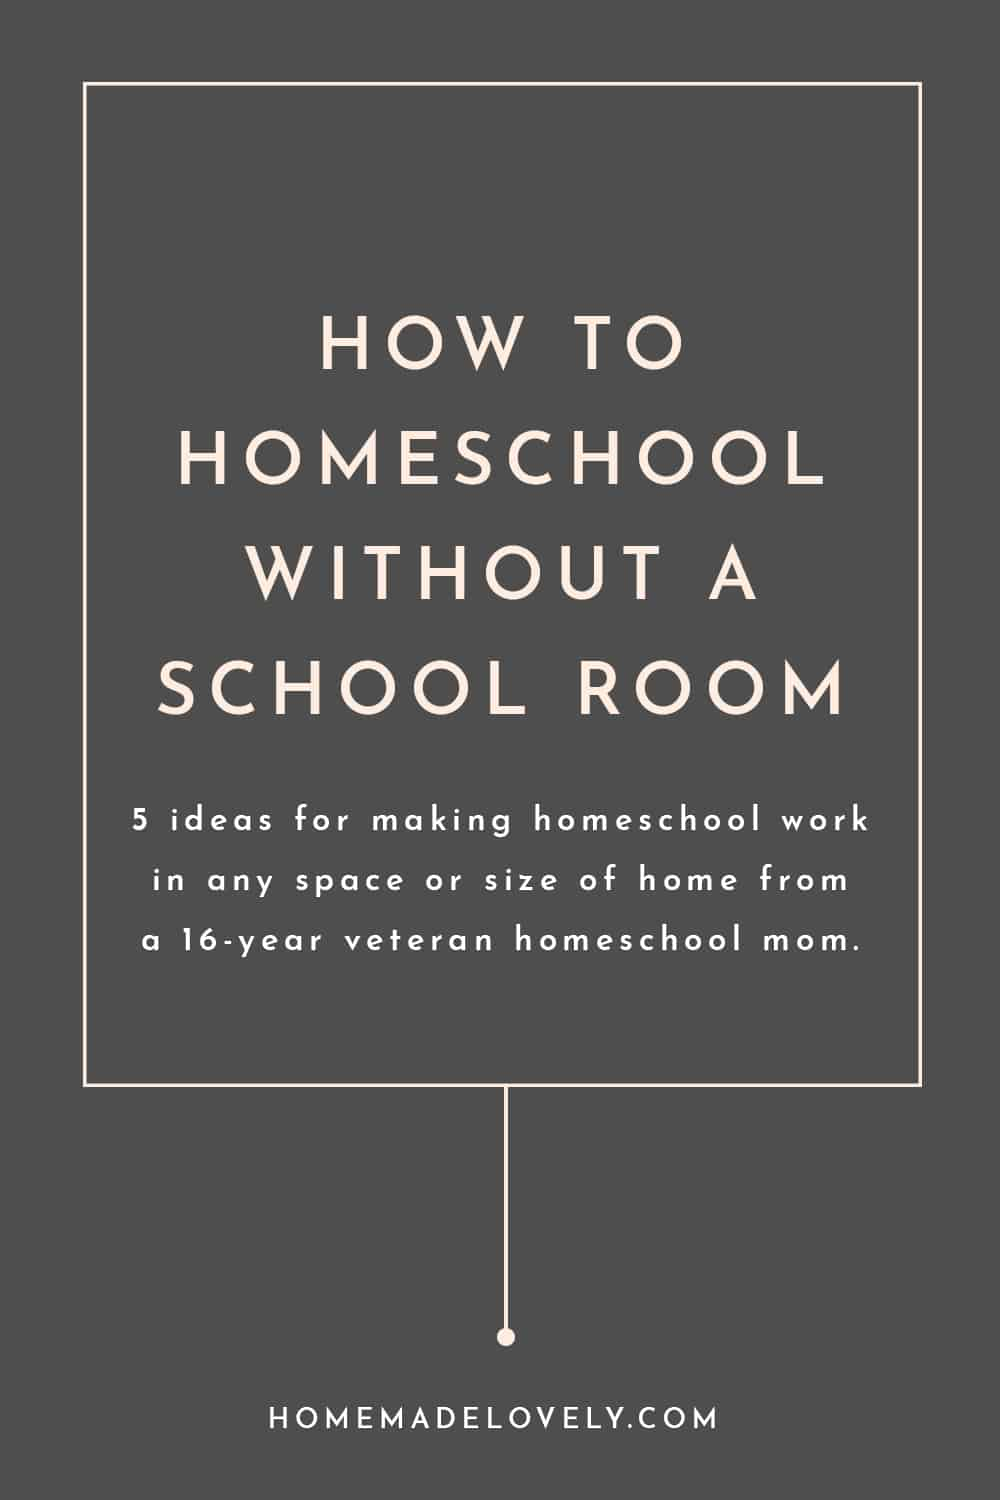 how to homeschool without a school room pink on grey background